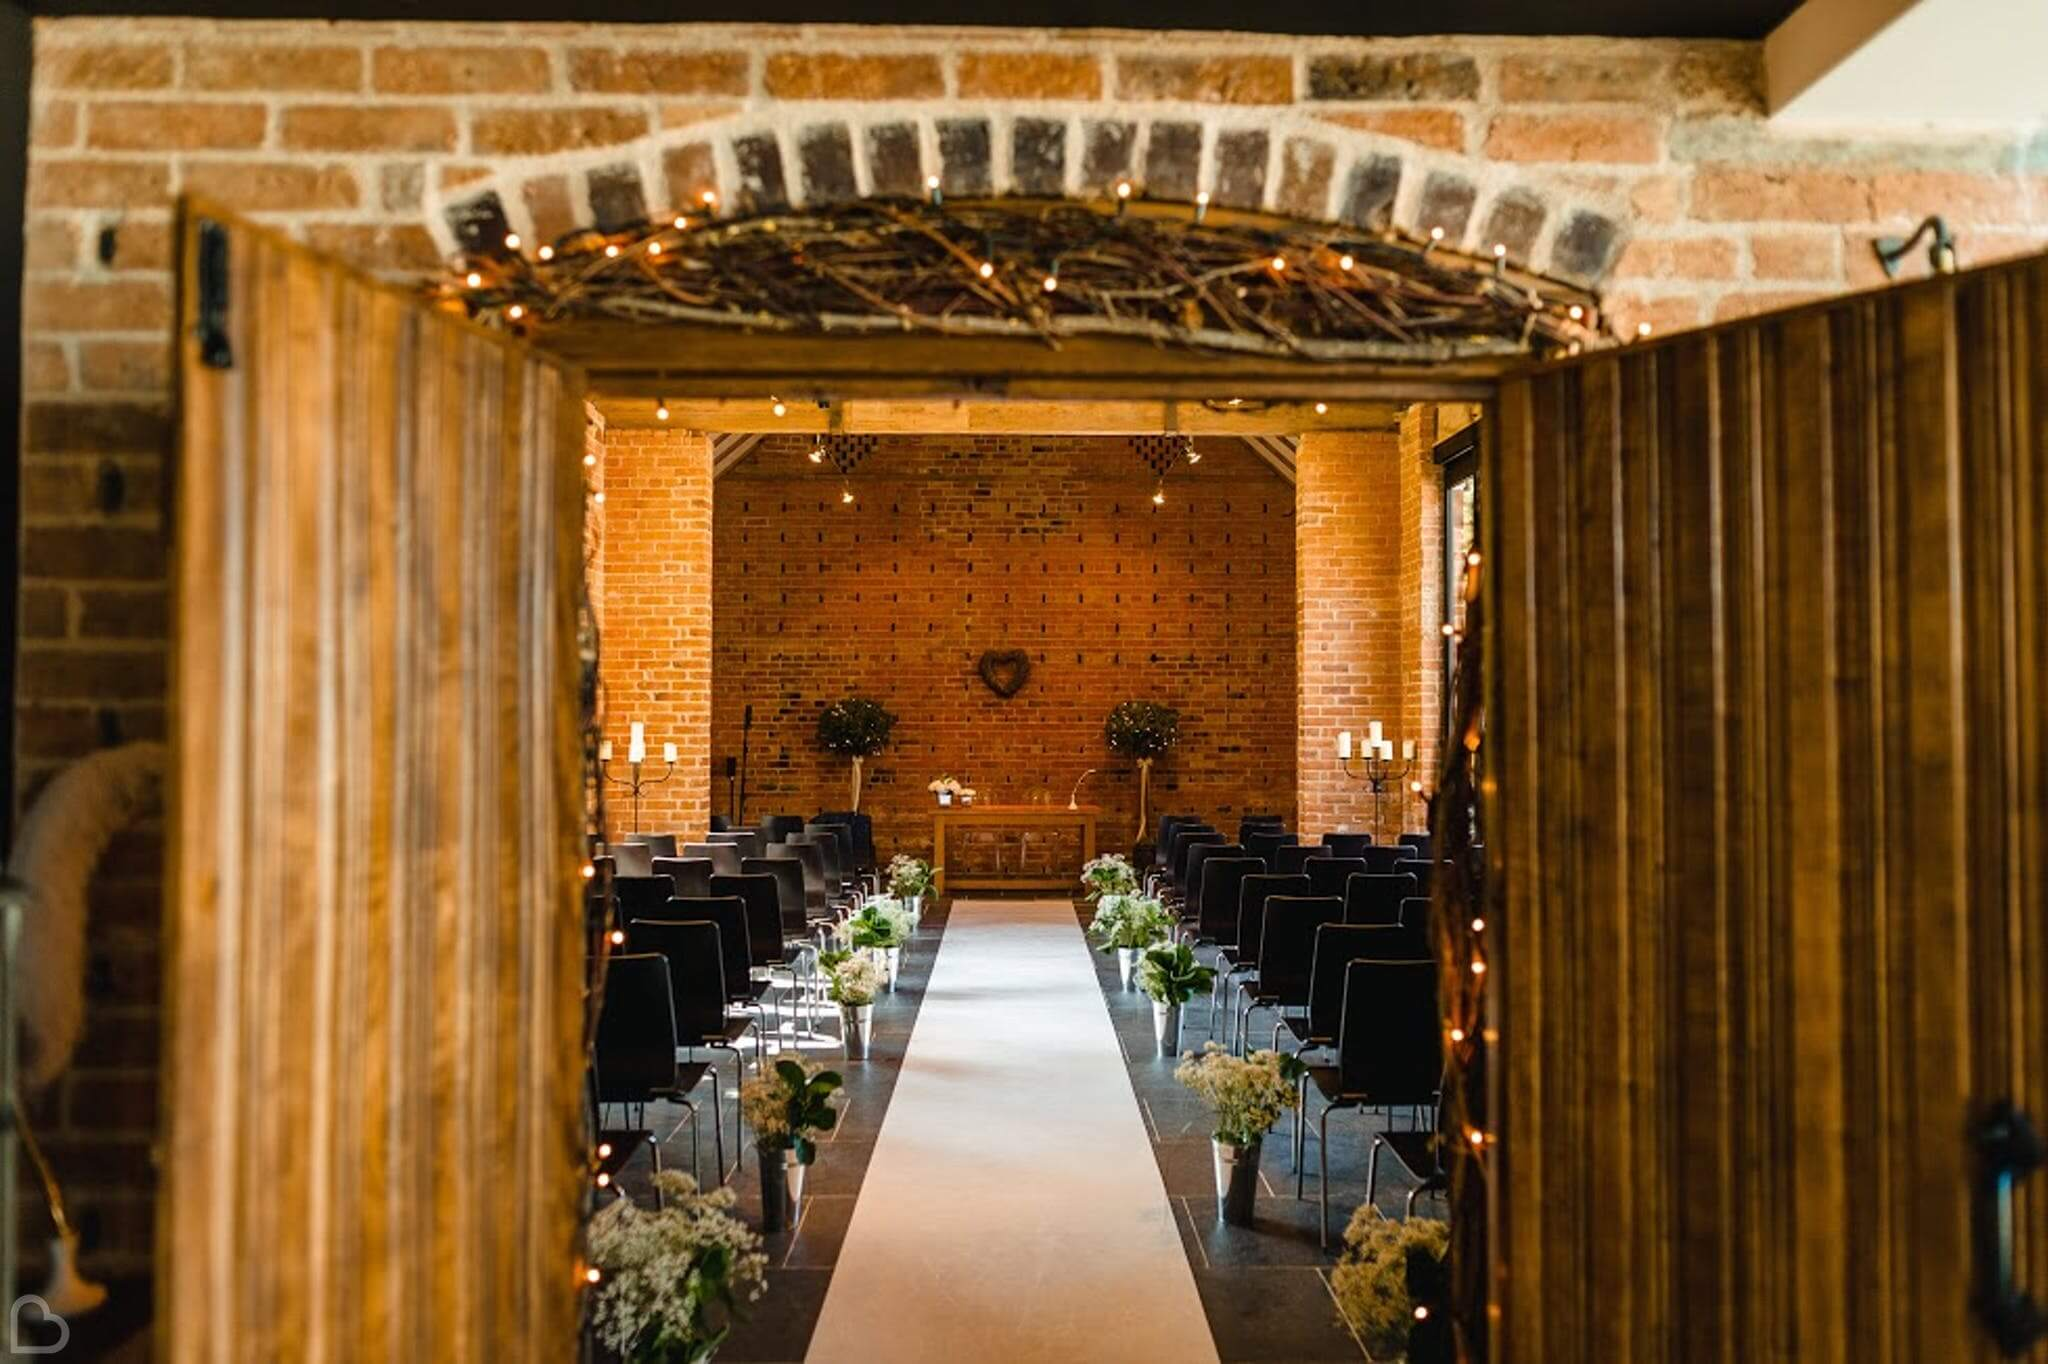 redhouse barn wedding venue set up for wedding ceremony